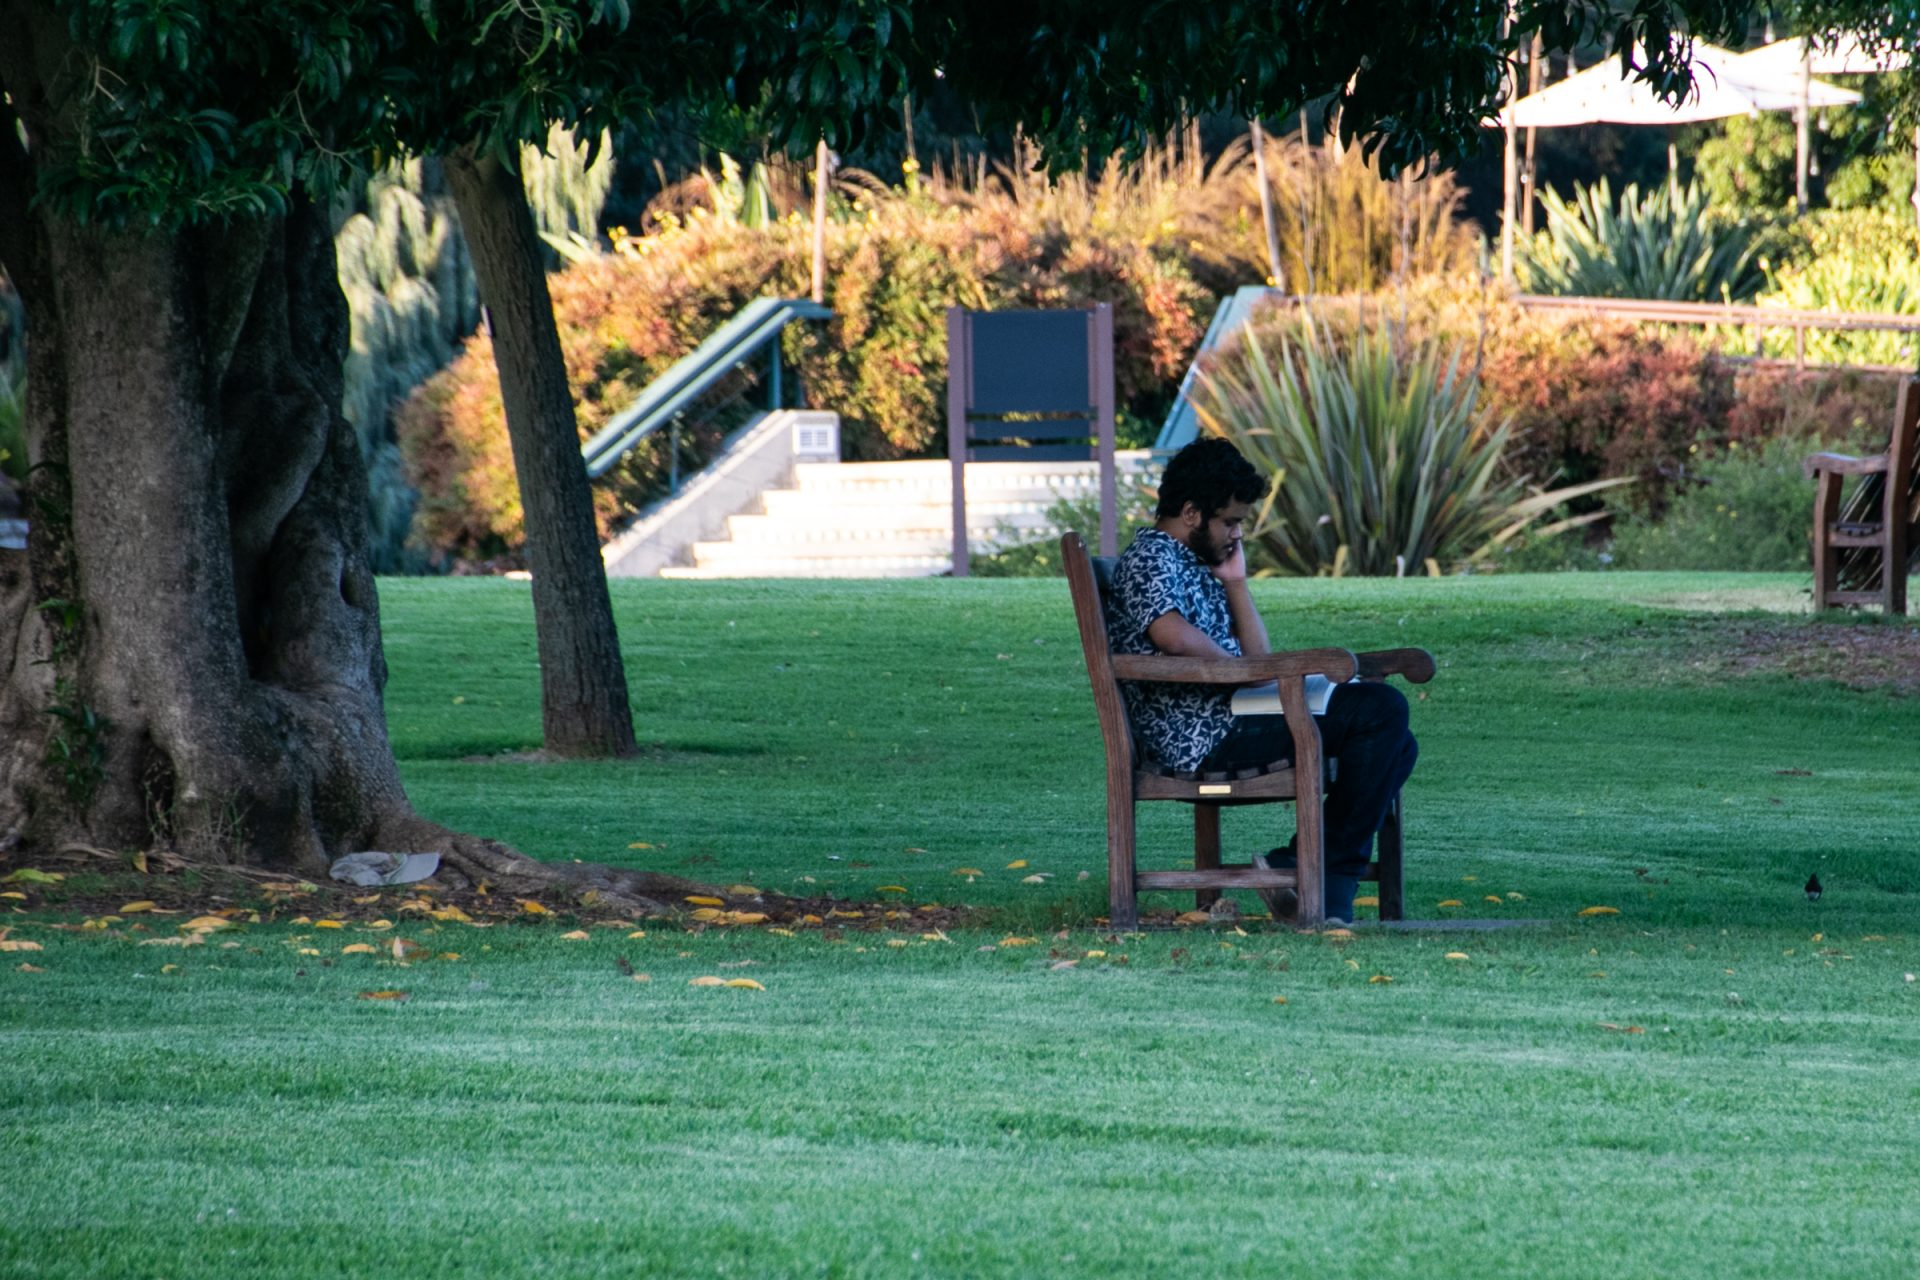 Man Seated On Bench Under Tree